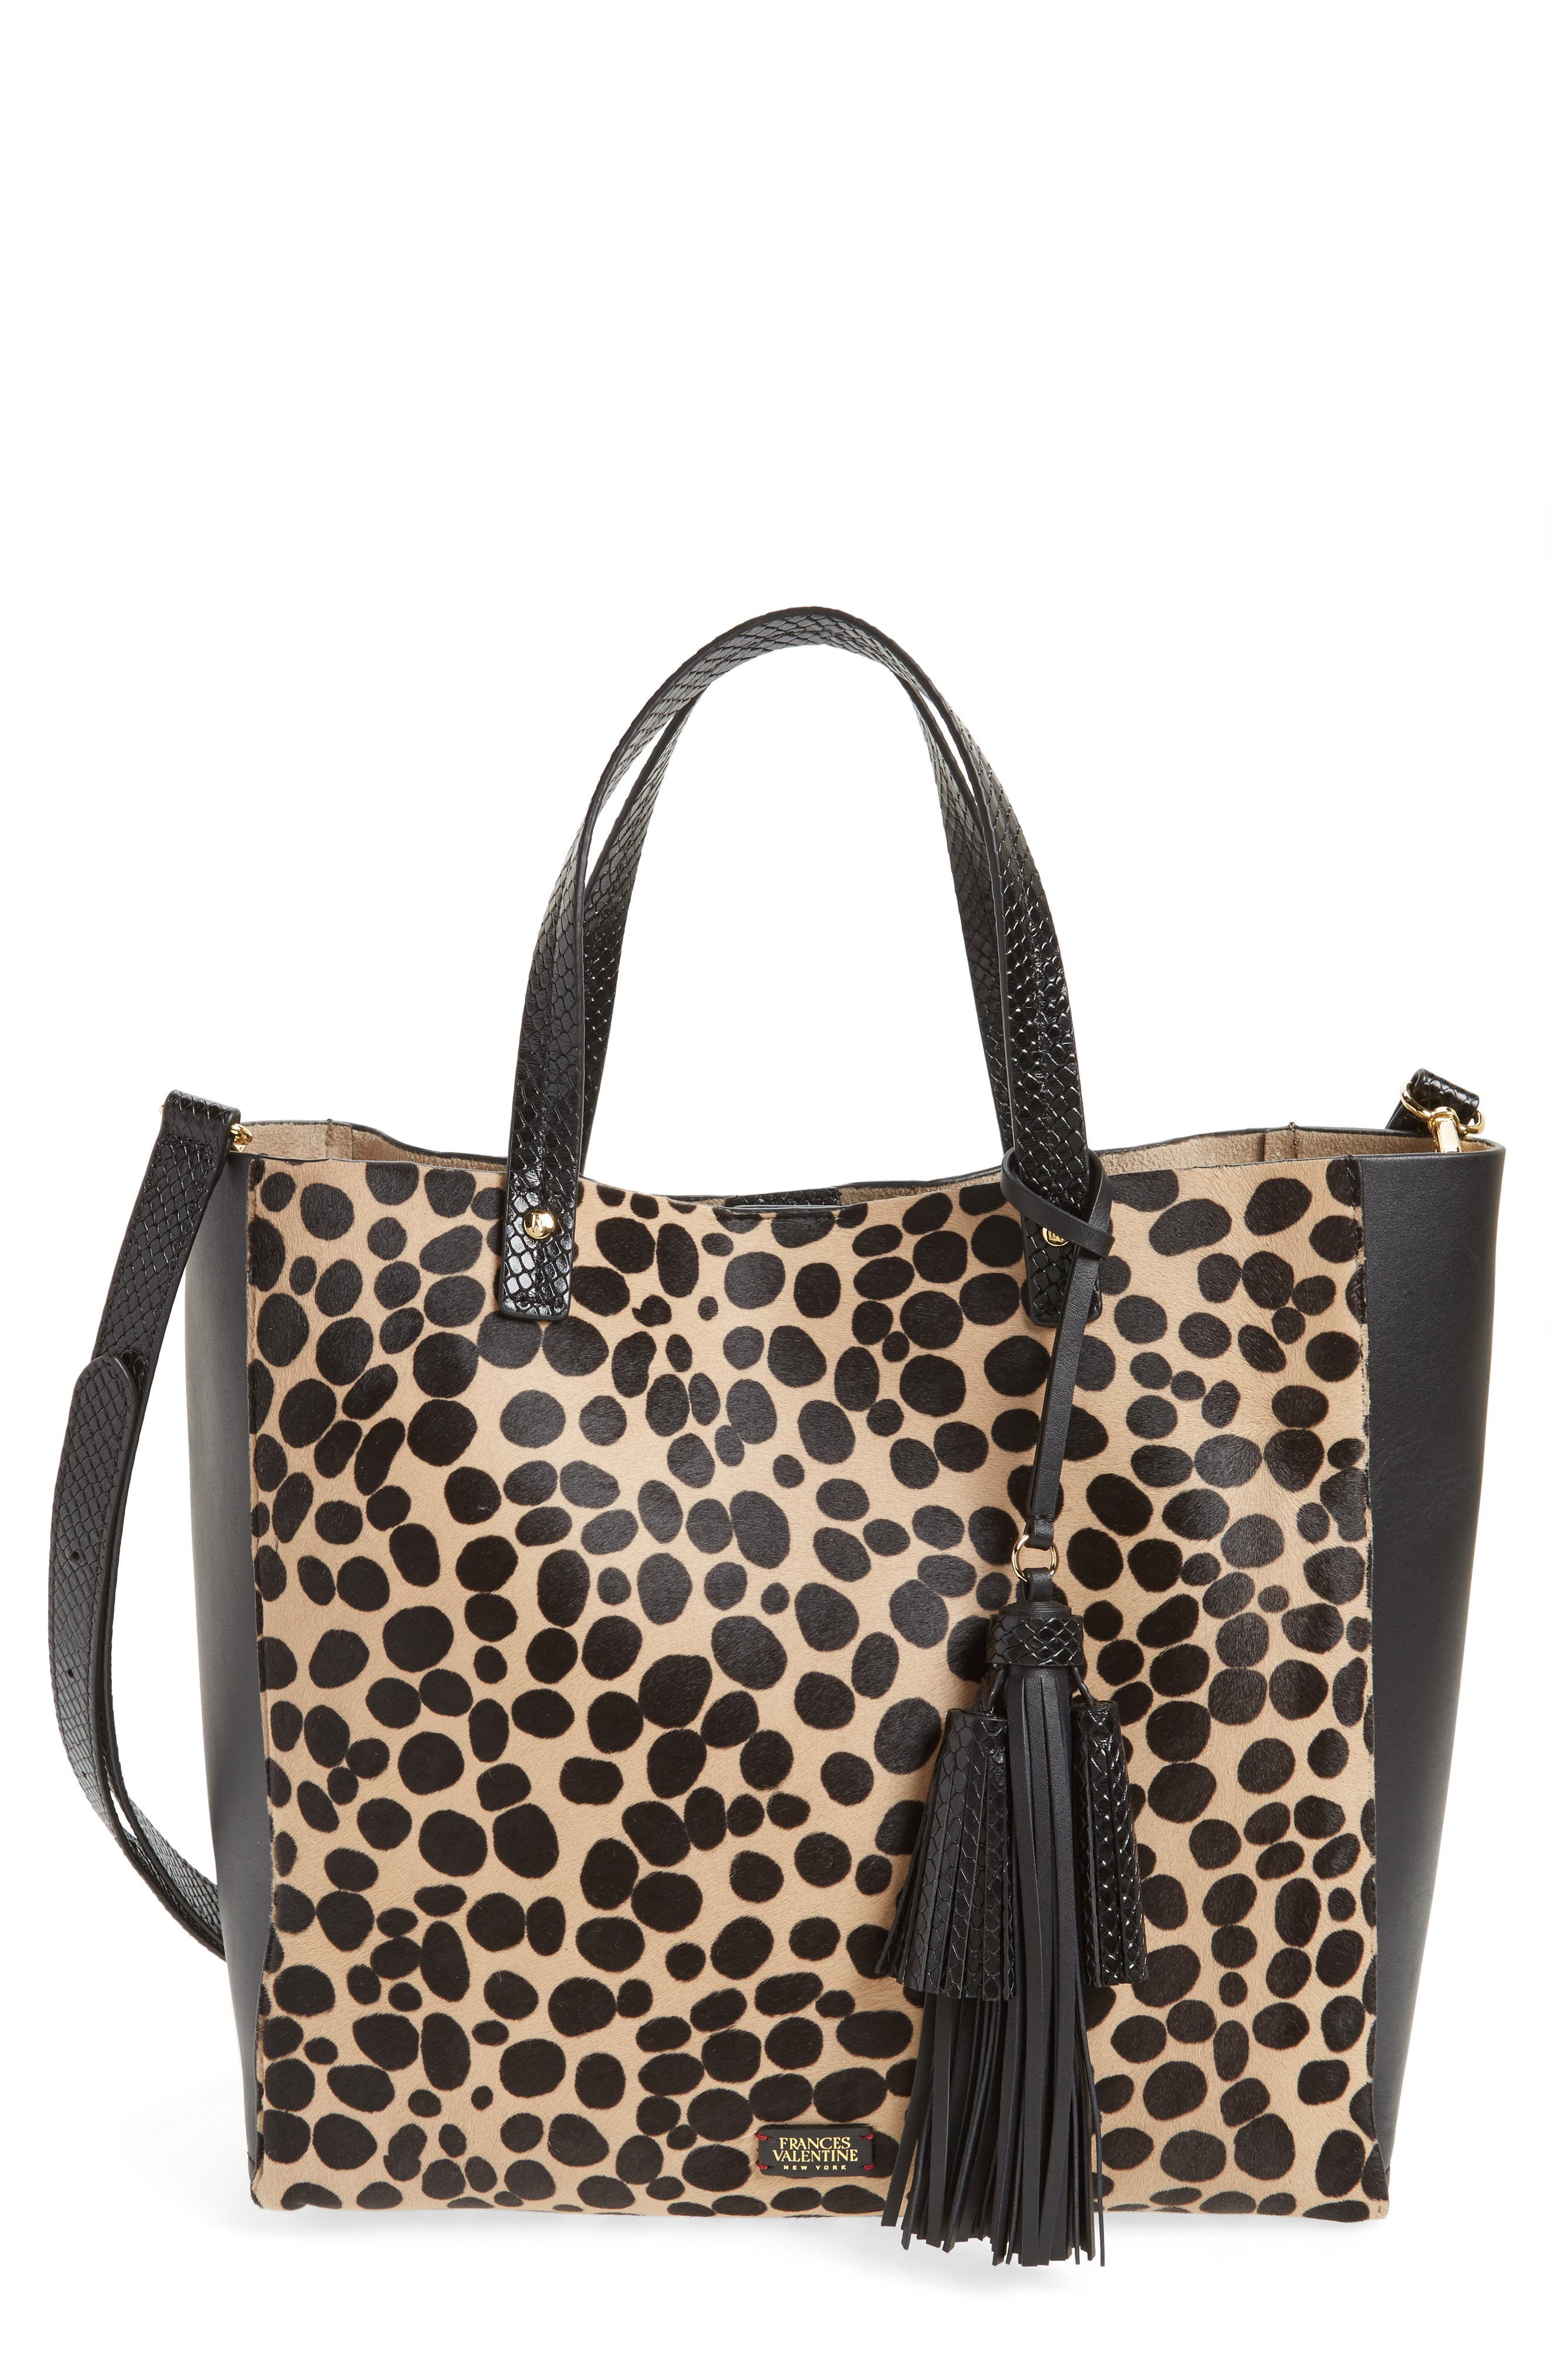 Genuine Calf Hair & Leather Convertible Tote,                             Main thumbnail 1, color,